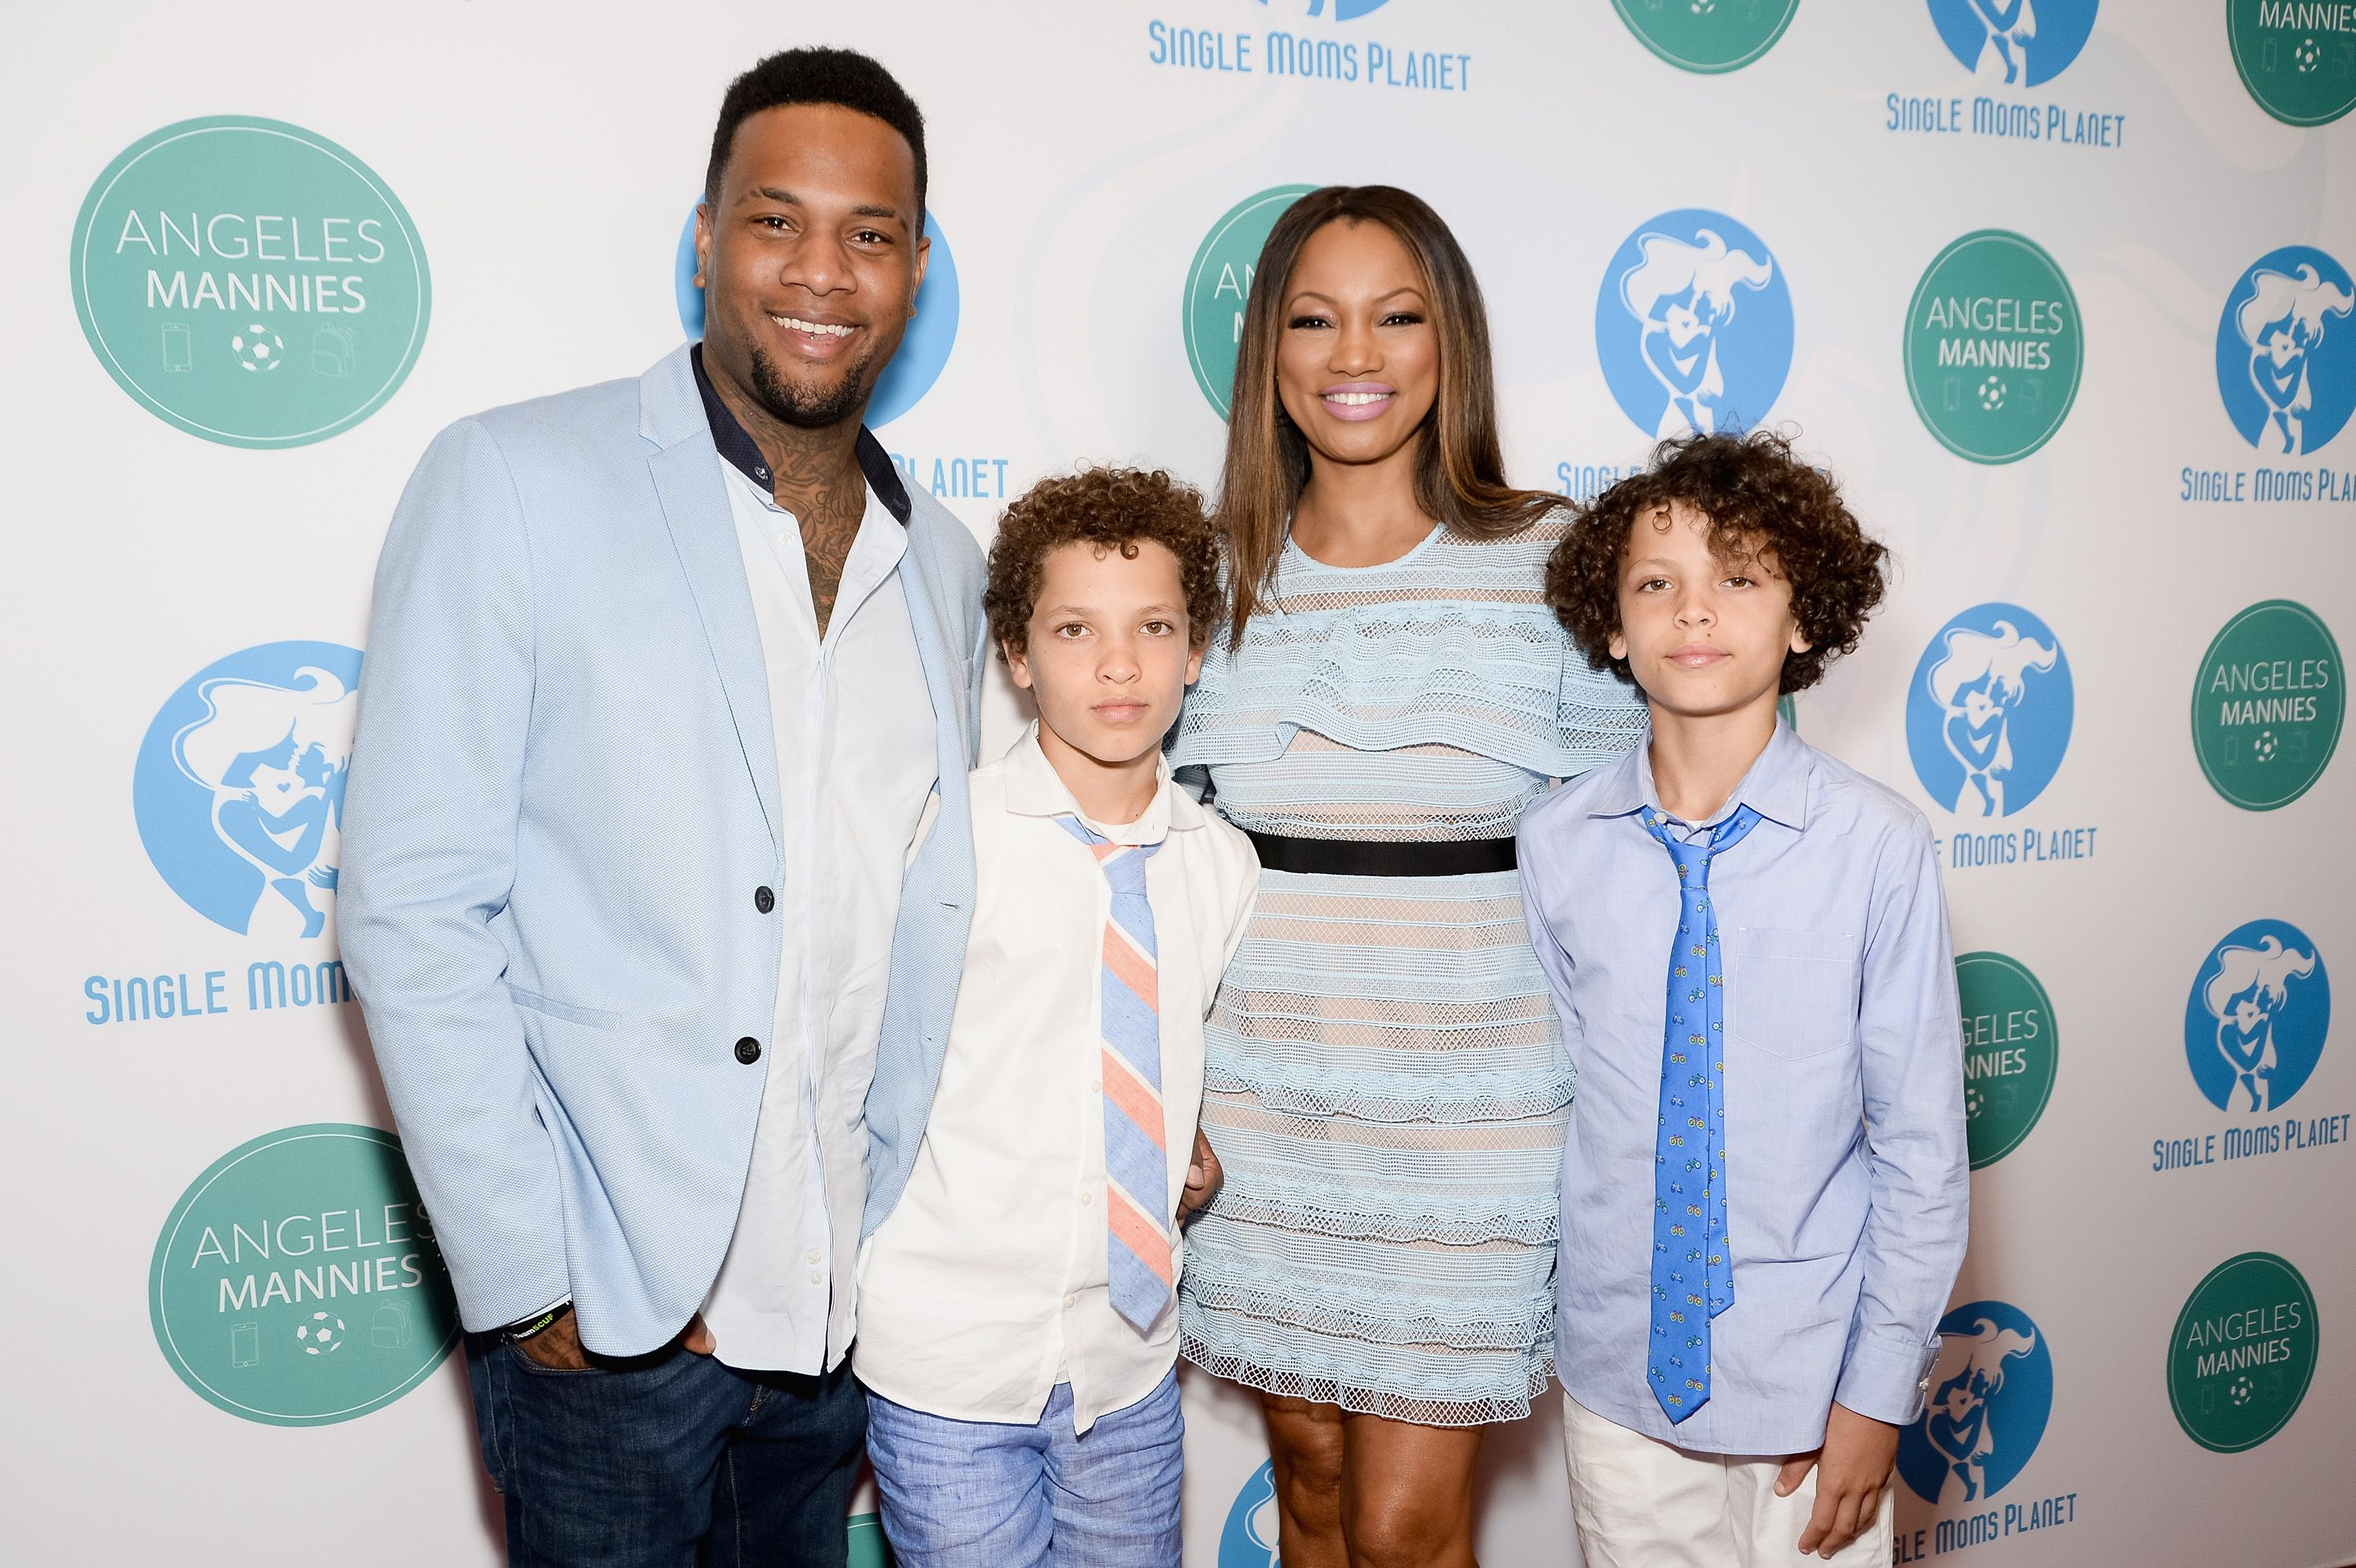 Giselle Beauvais and sons Oliver Saunders, Jaid Thomas Nilon and Jax Joseph Nilon at the Single Mom's Awards on May 11, 2017 in Beverly Hills.   Photo: Getty Images